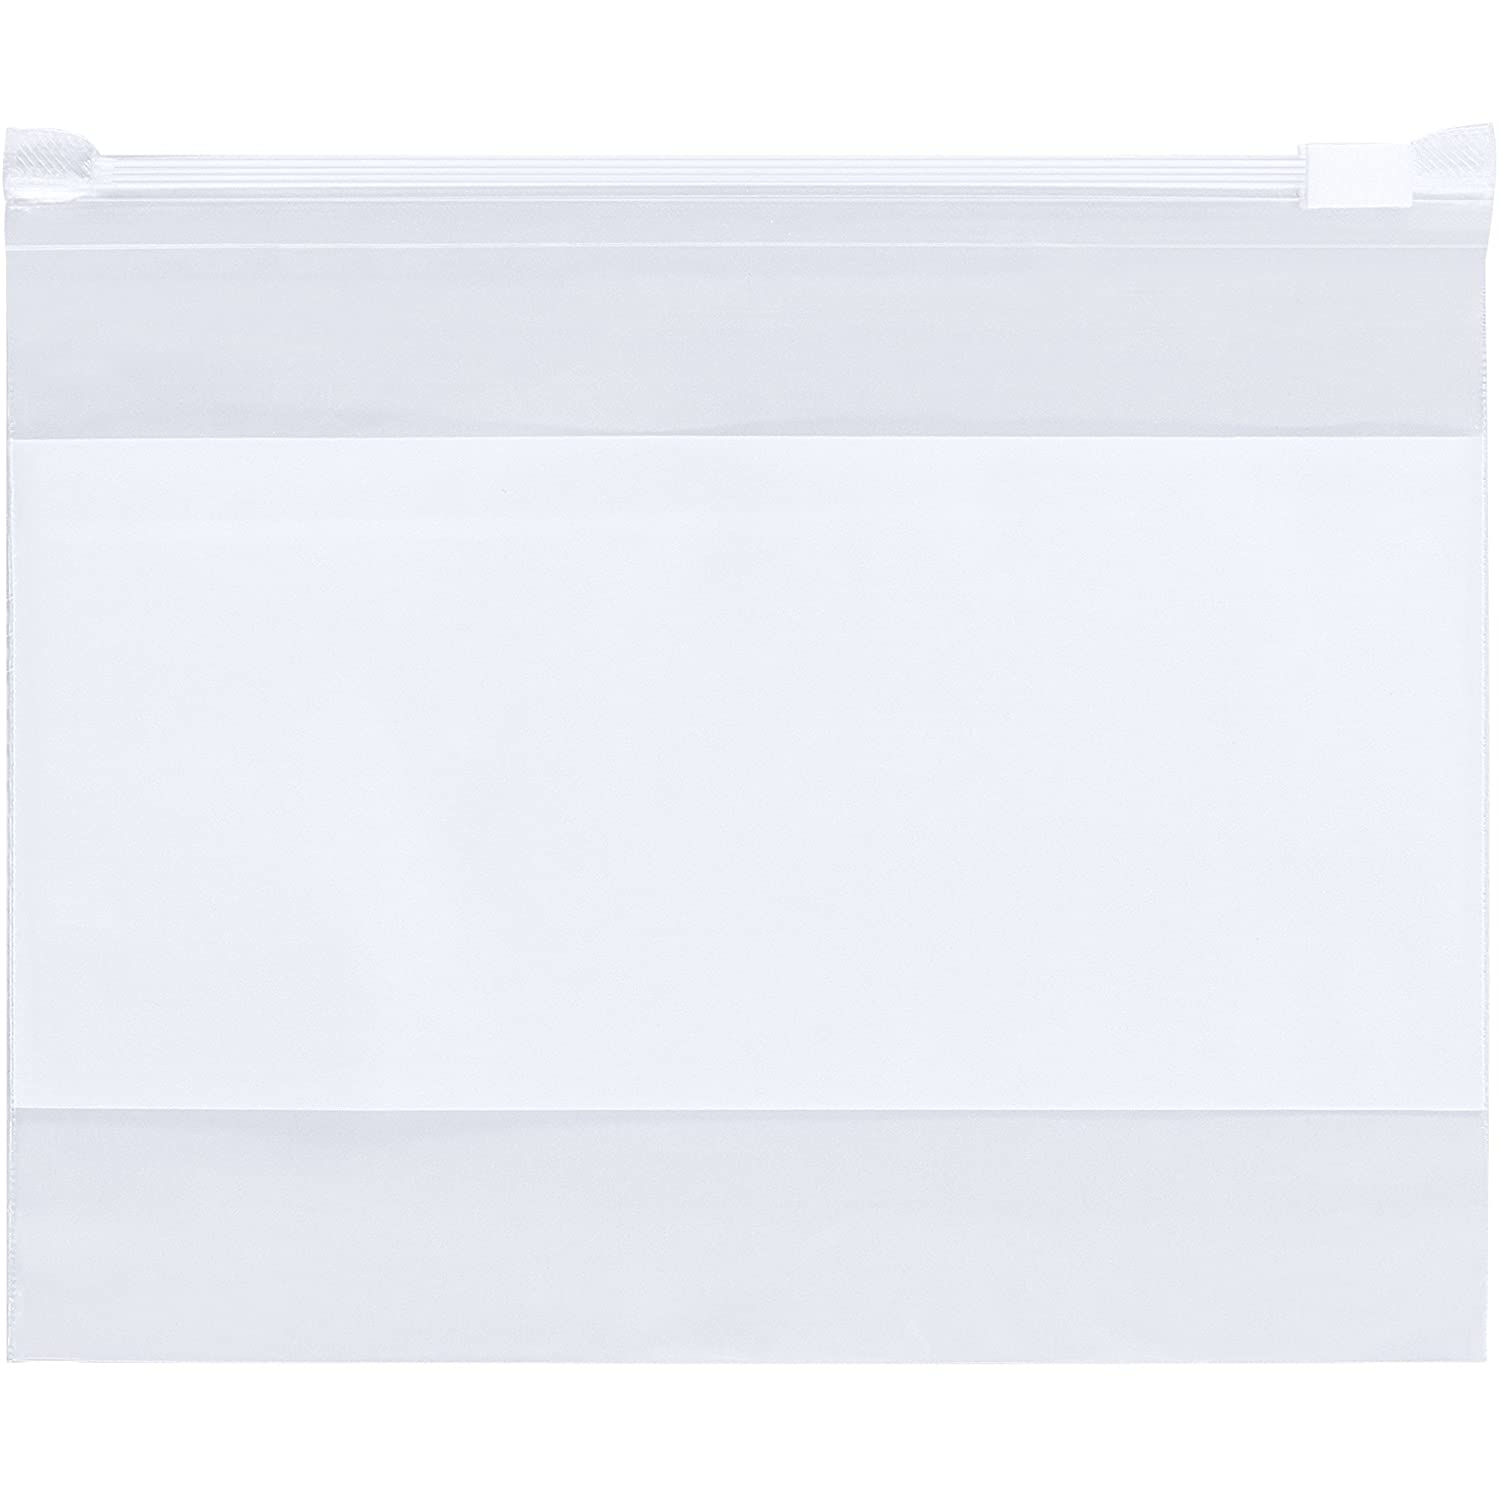 Clothing USDA Approved. Reclosable Packing Bags 4 Mil Food Resealable Polyethylene Storage Bags 100 Pack of White Block Lock Top Bags 8 x 10 FDA Zipper Lock Heavy Duty Plastic Bag for Jewelry